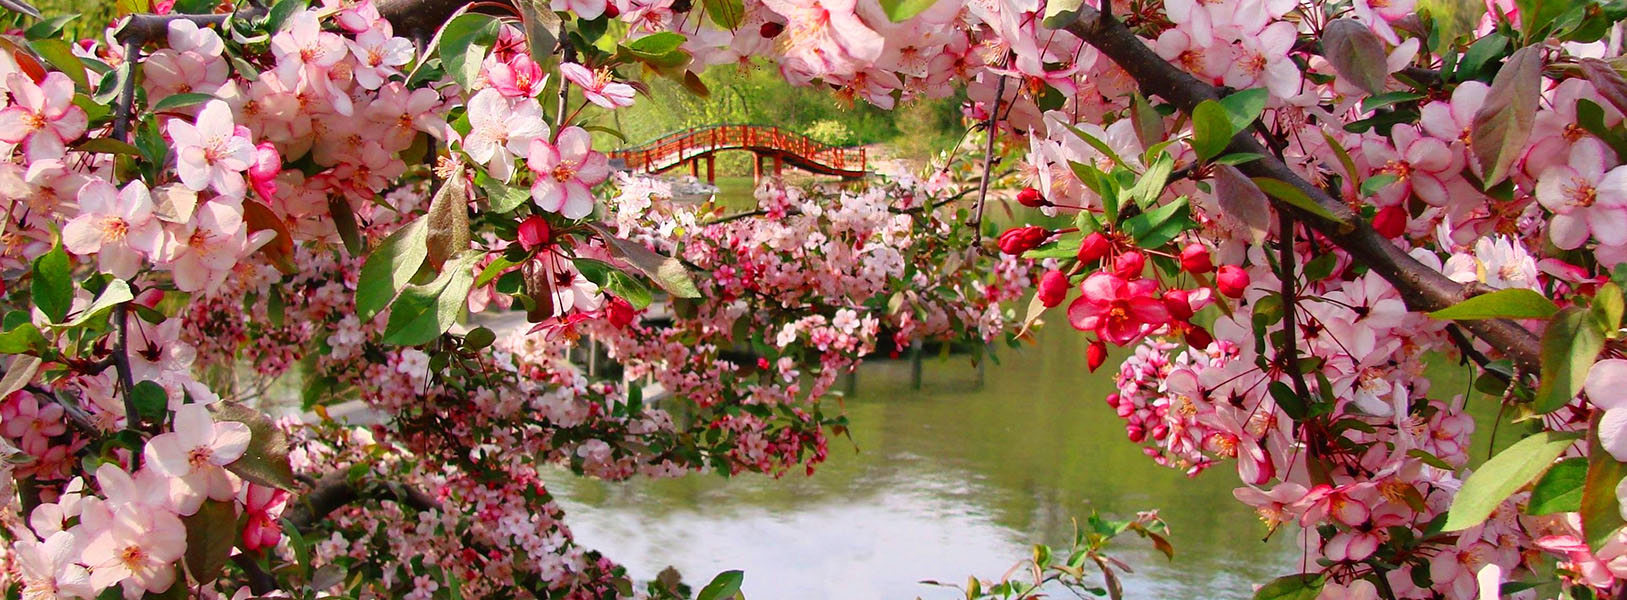 rbg-slider-flowers-bridge